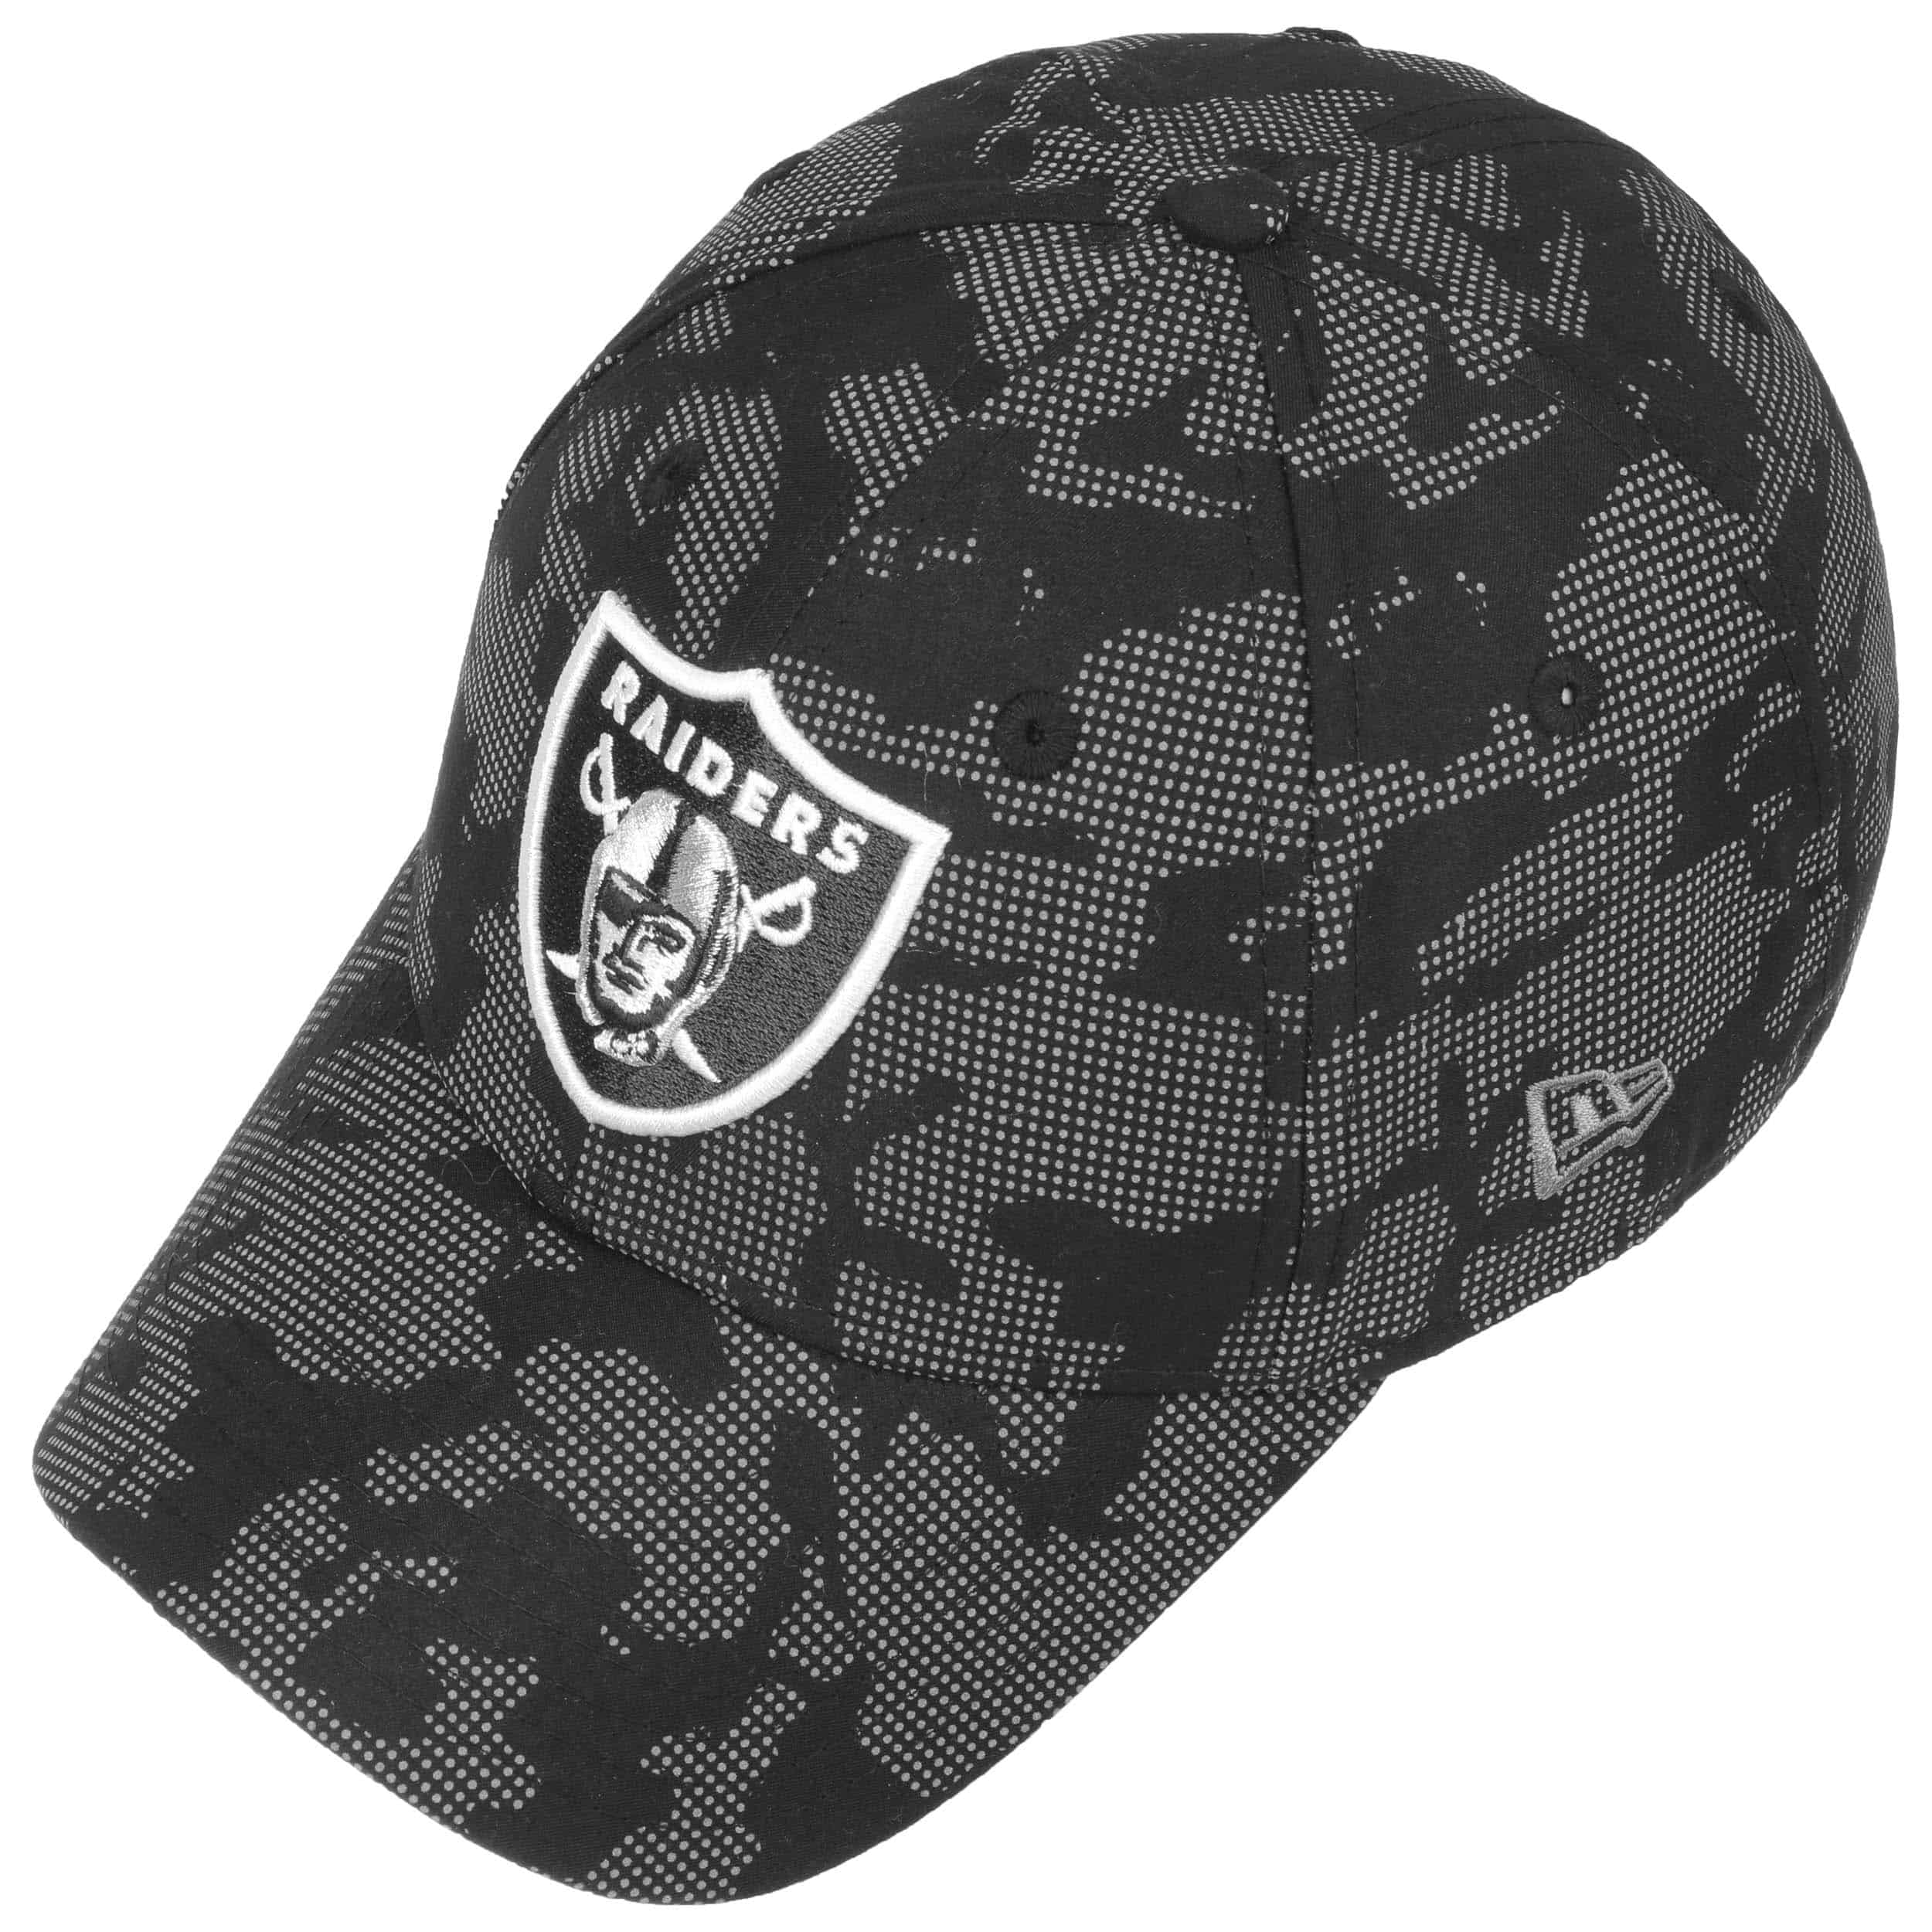 New Era Casquette NFL Oakland Raiders Olive Edition 9Forty Snapback